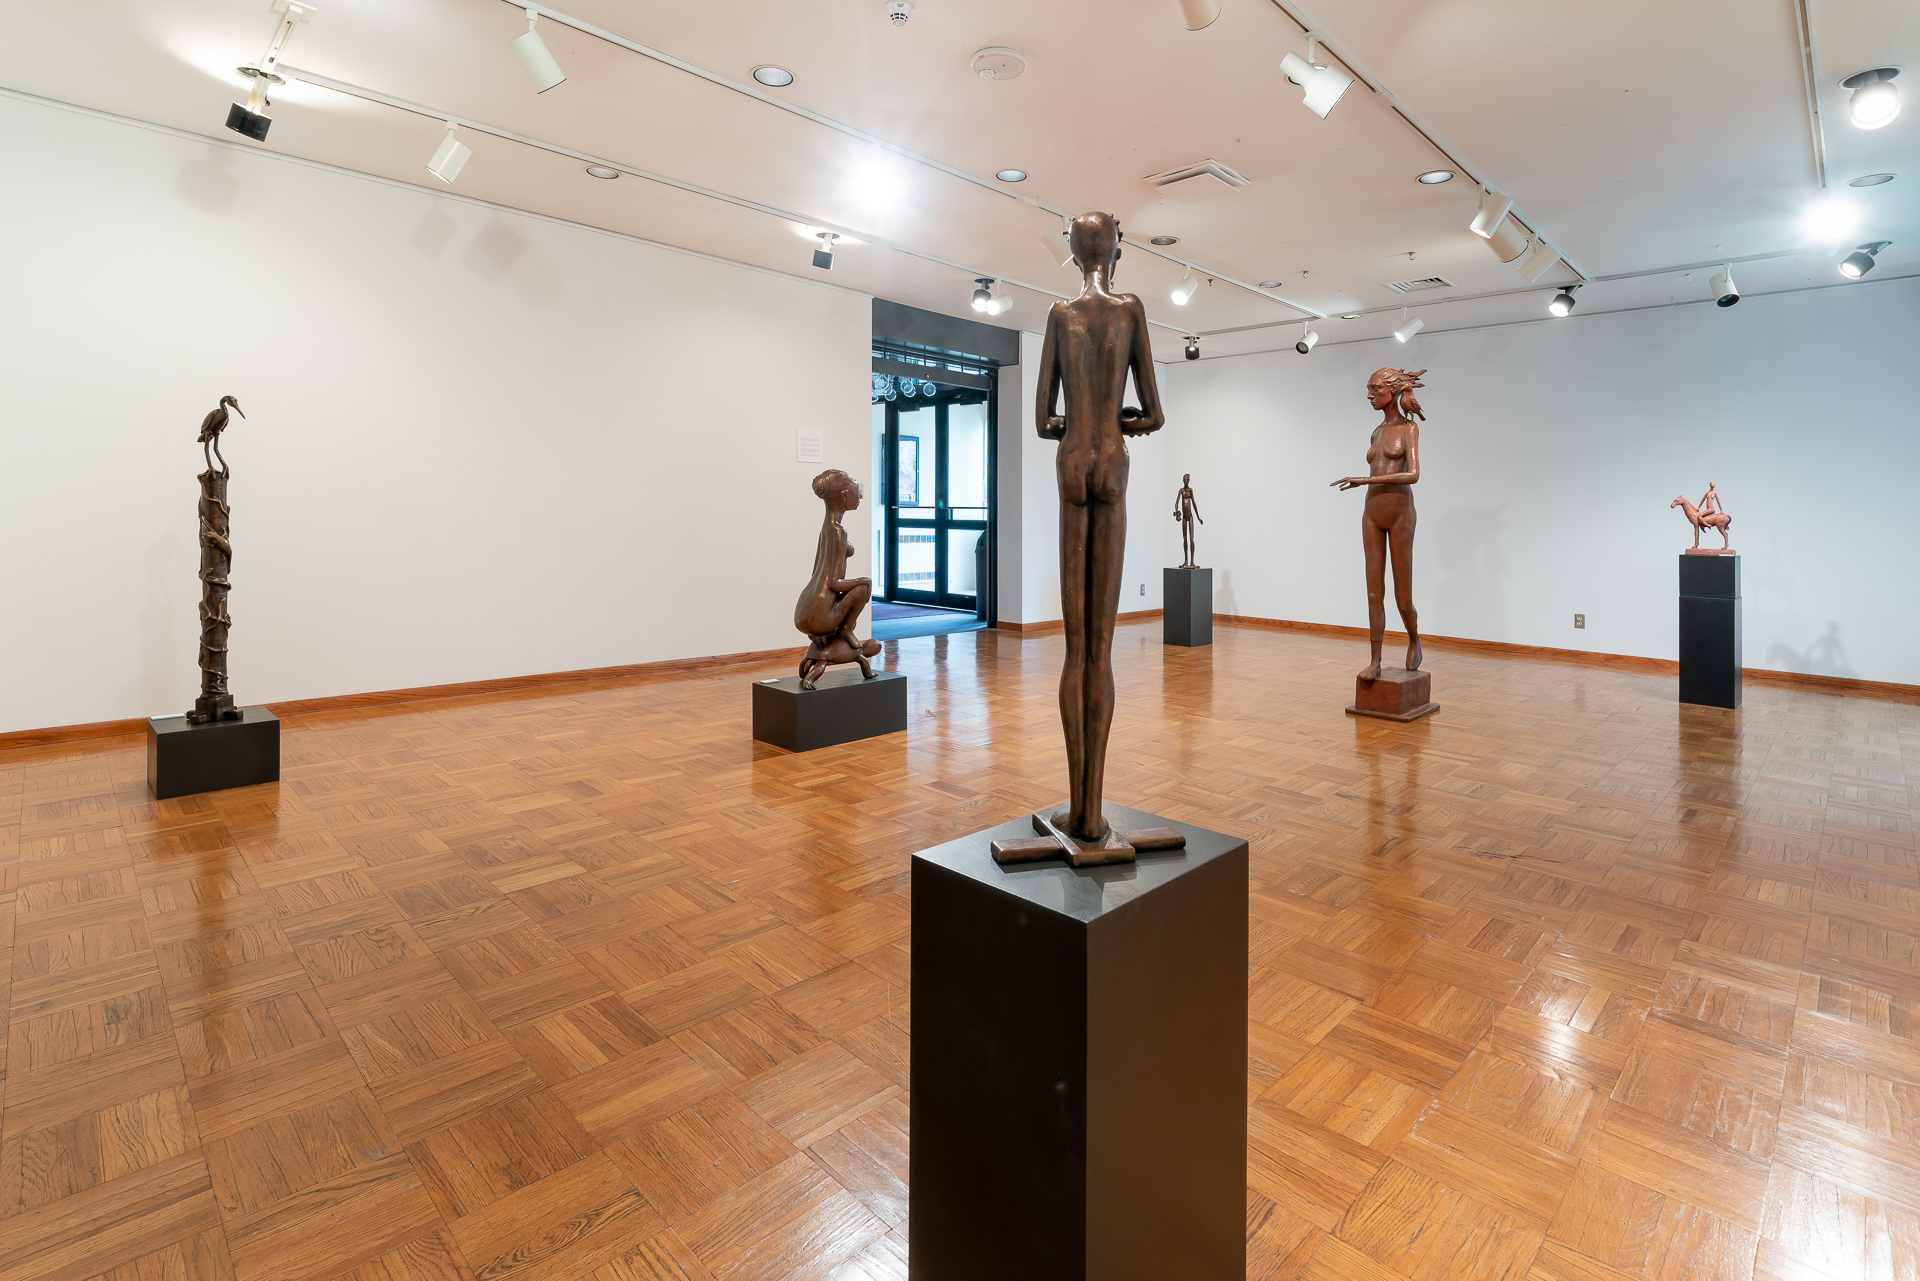 """Image: Installation shot of """"More Questions than Answers"""" Several sculptures are placed around a brightly lit gallery space. Most of them standing with one kneeling figure on the left. Photo courtesy of the artist."""